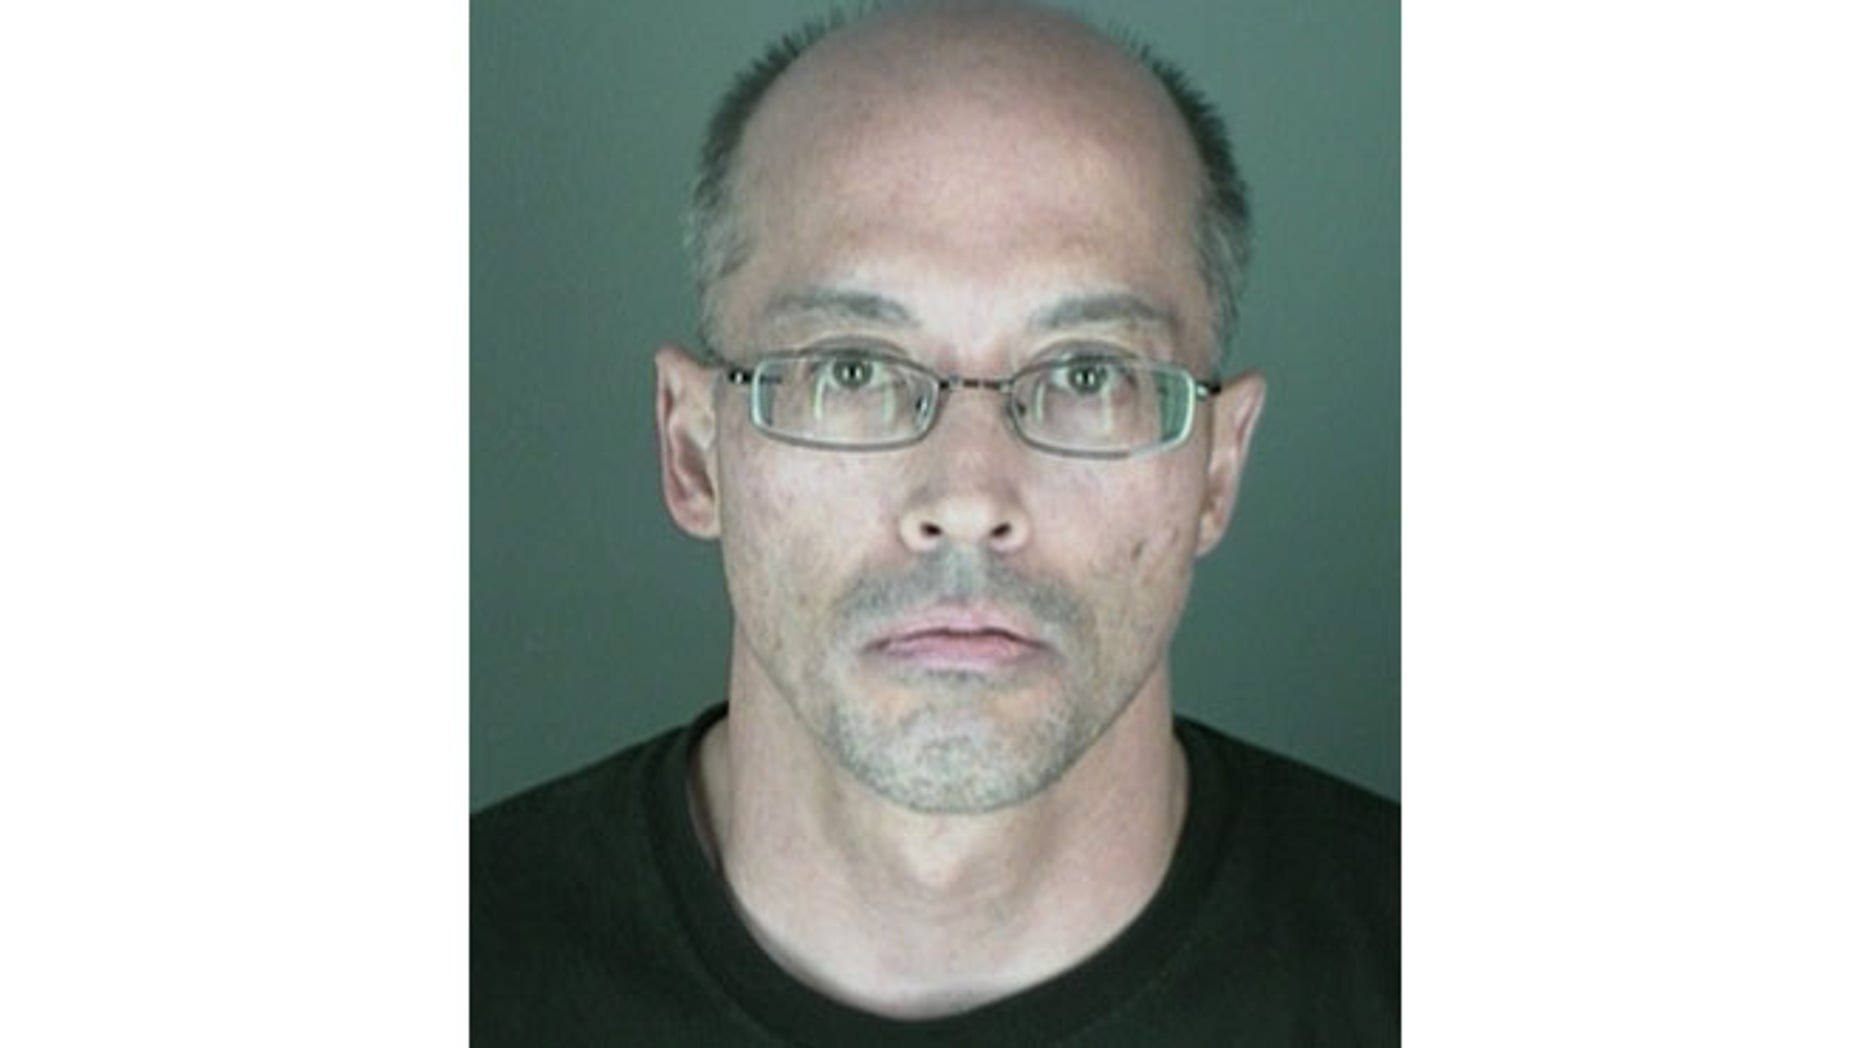 Richard Moller, 50, is facing charges of two counts of felony animal cruelty.